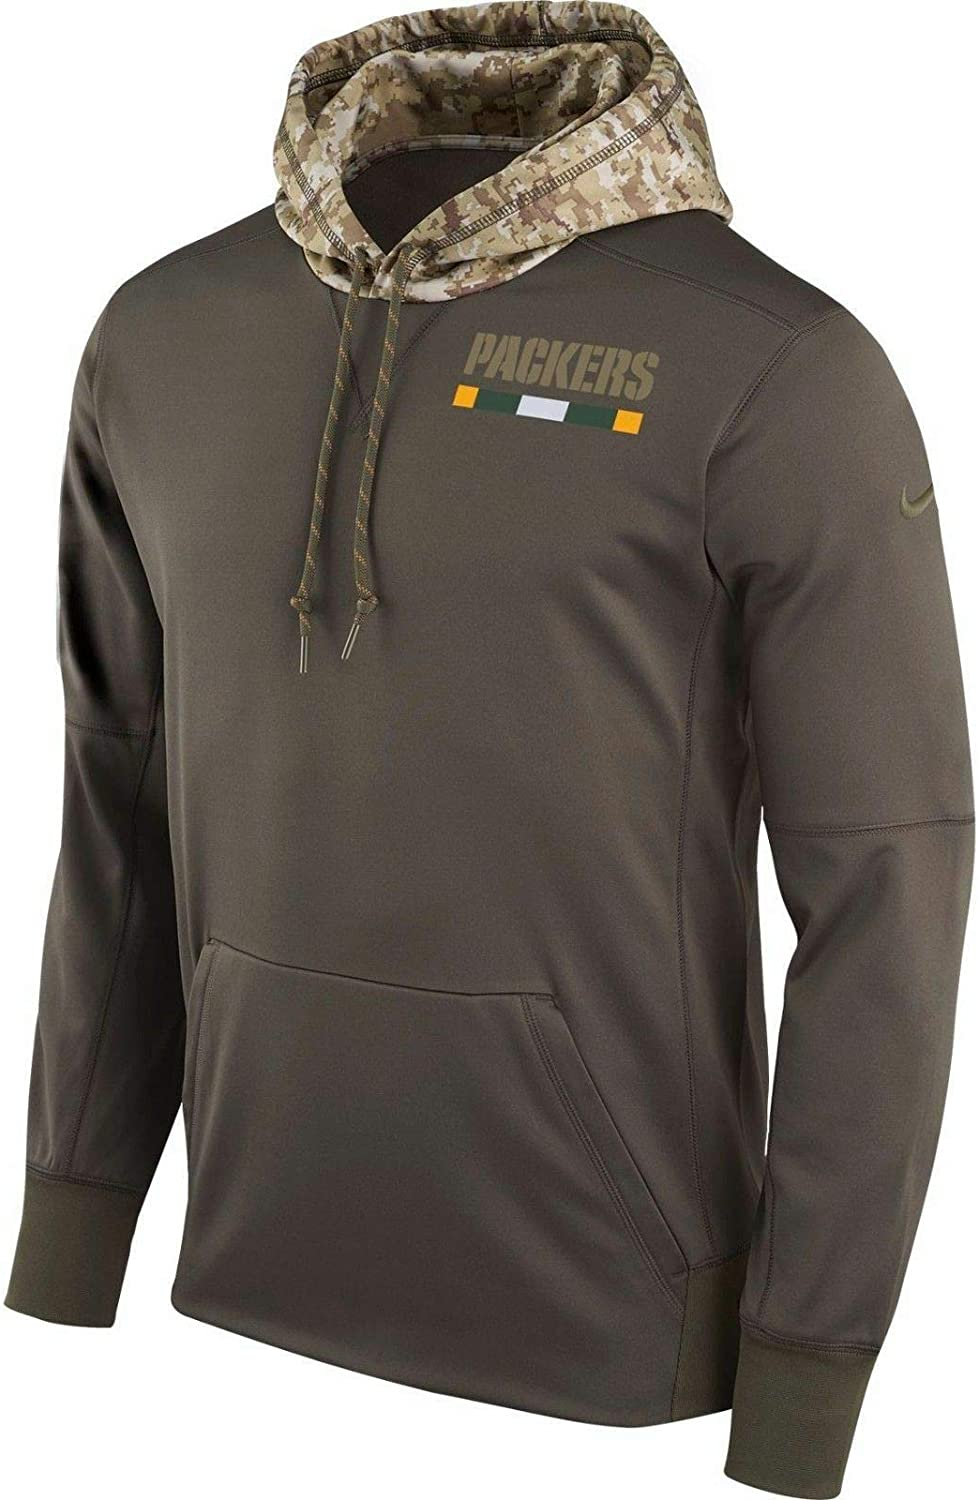 NFL Green Bay Packers Hoodies Salute to Service Sideline Performance Sweatshirts